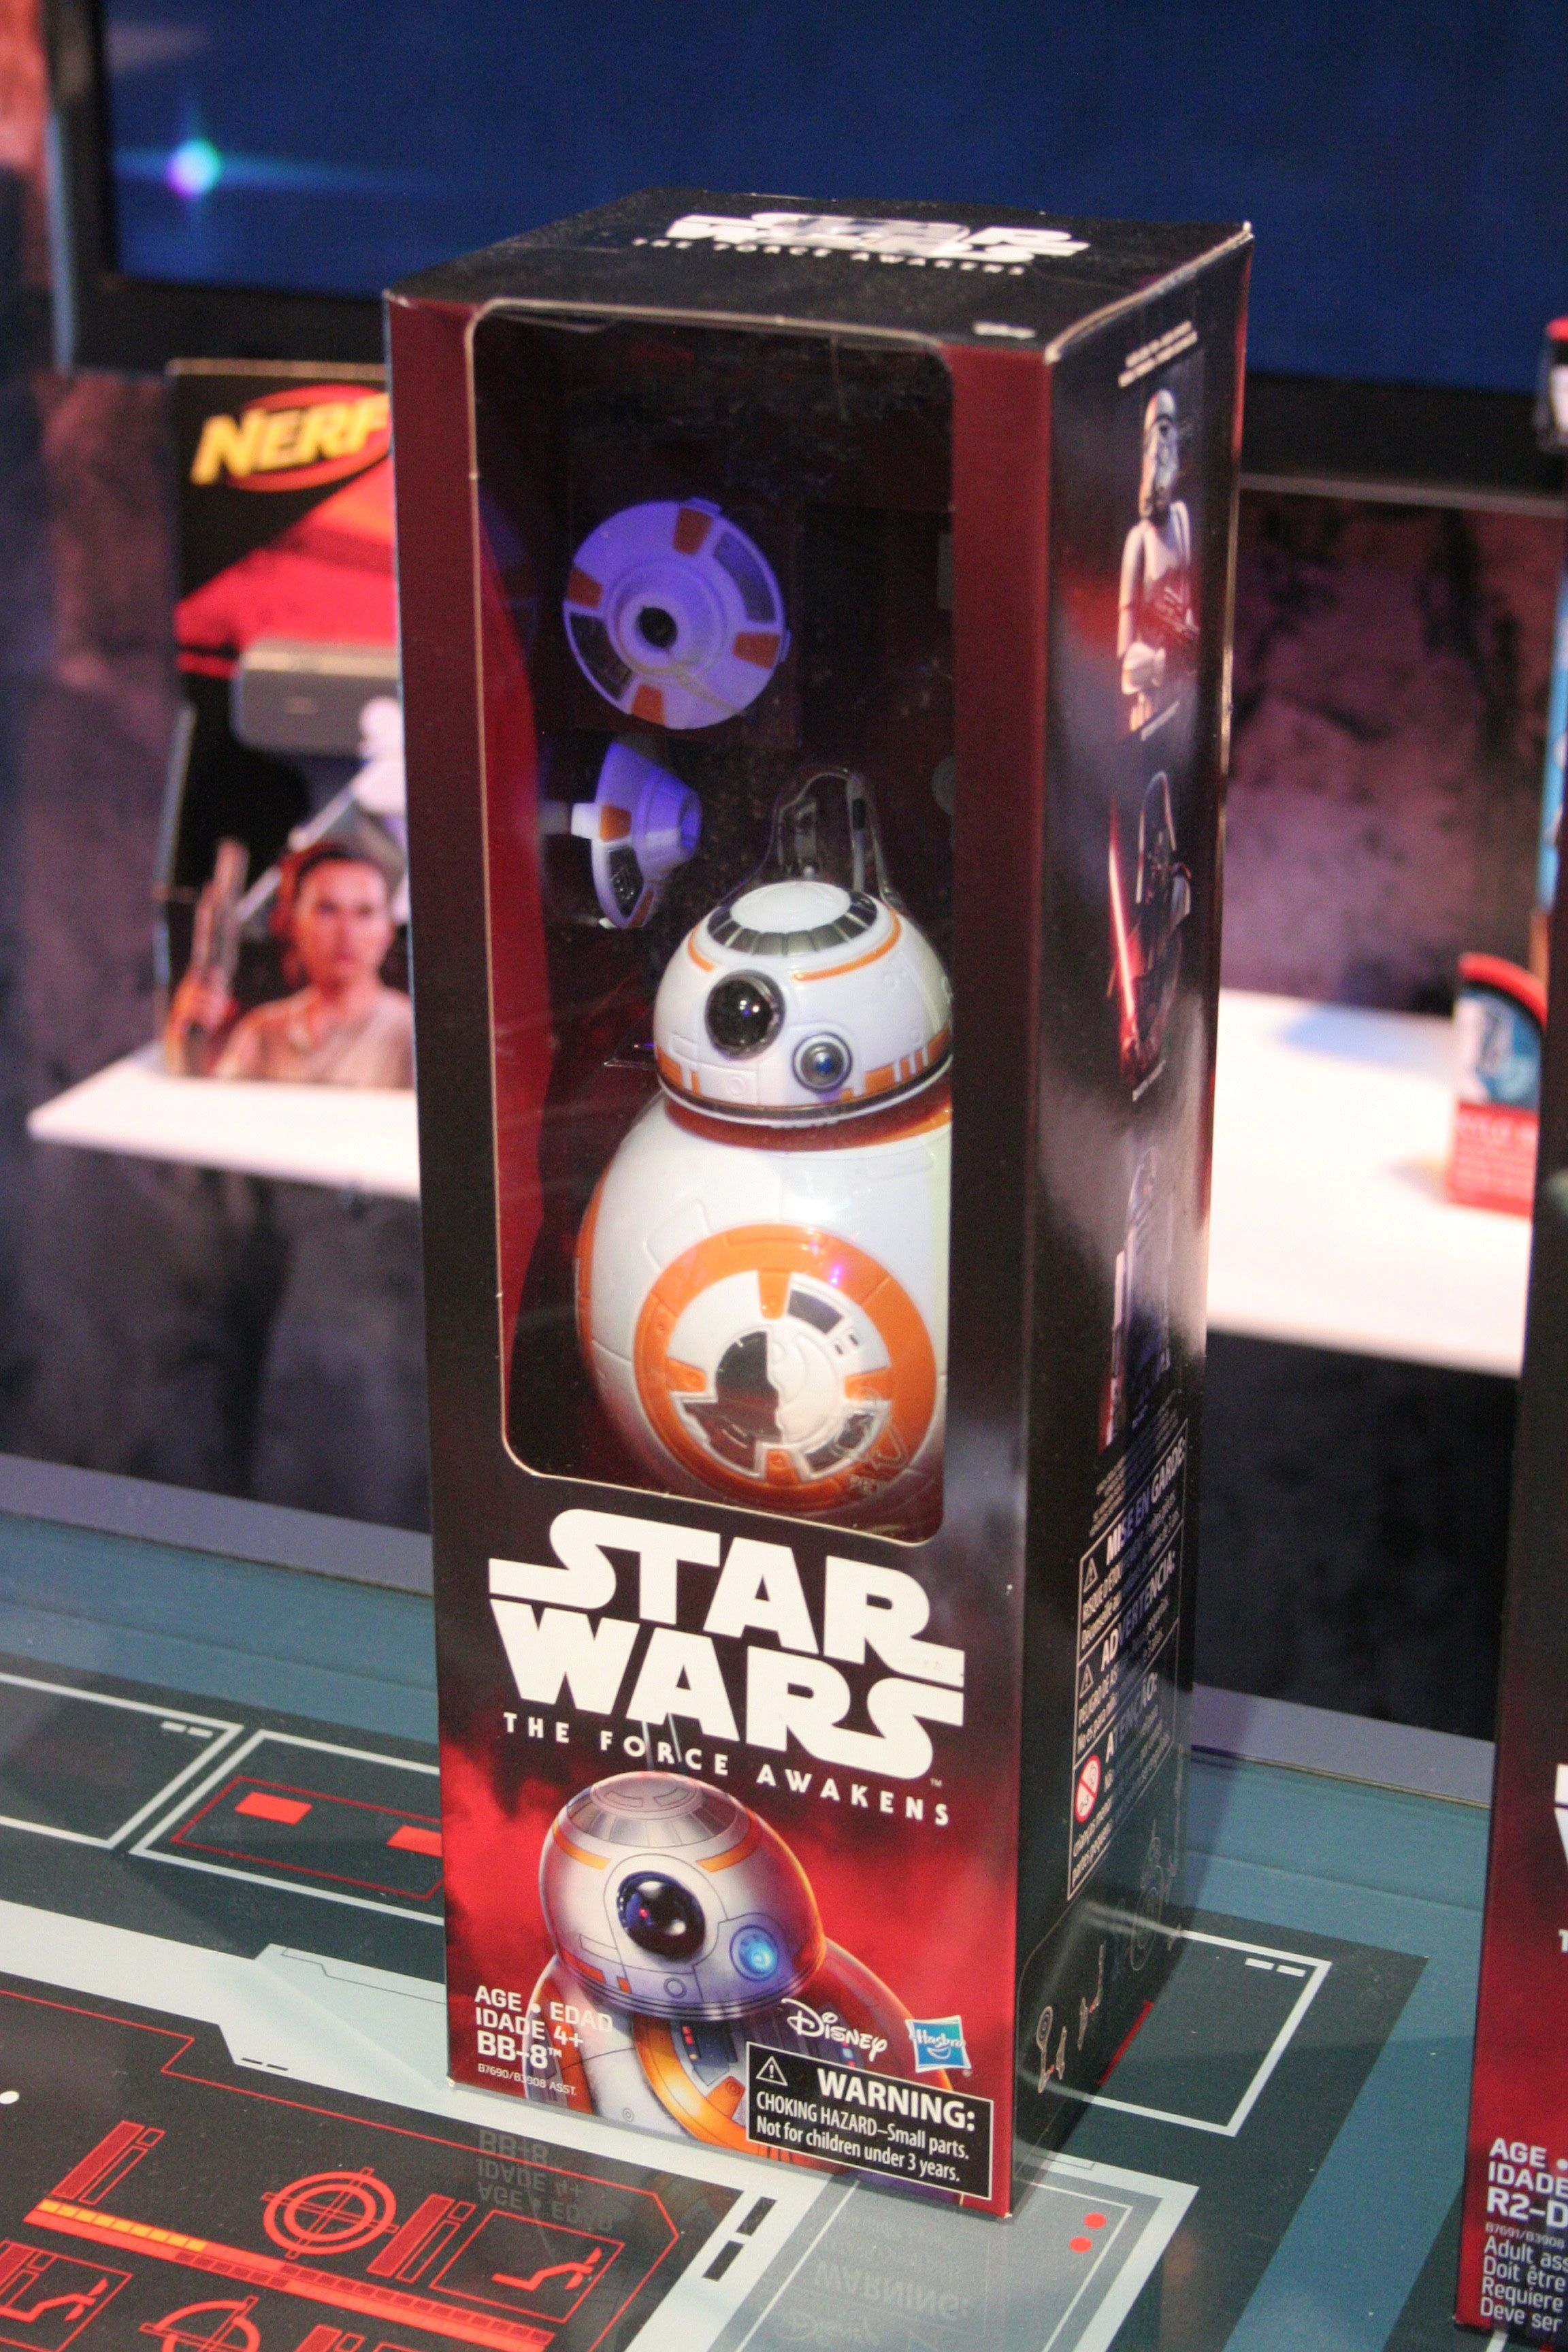 Star Wars Toys Hasbro : Star wars hasbro images from toy fair collider